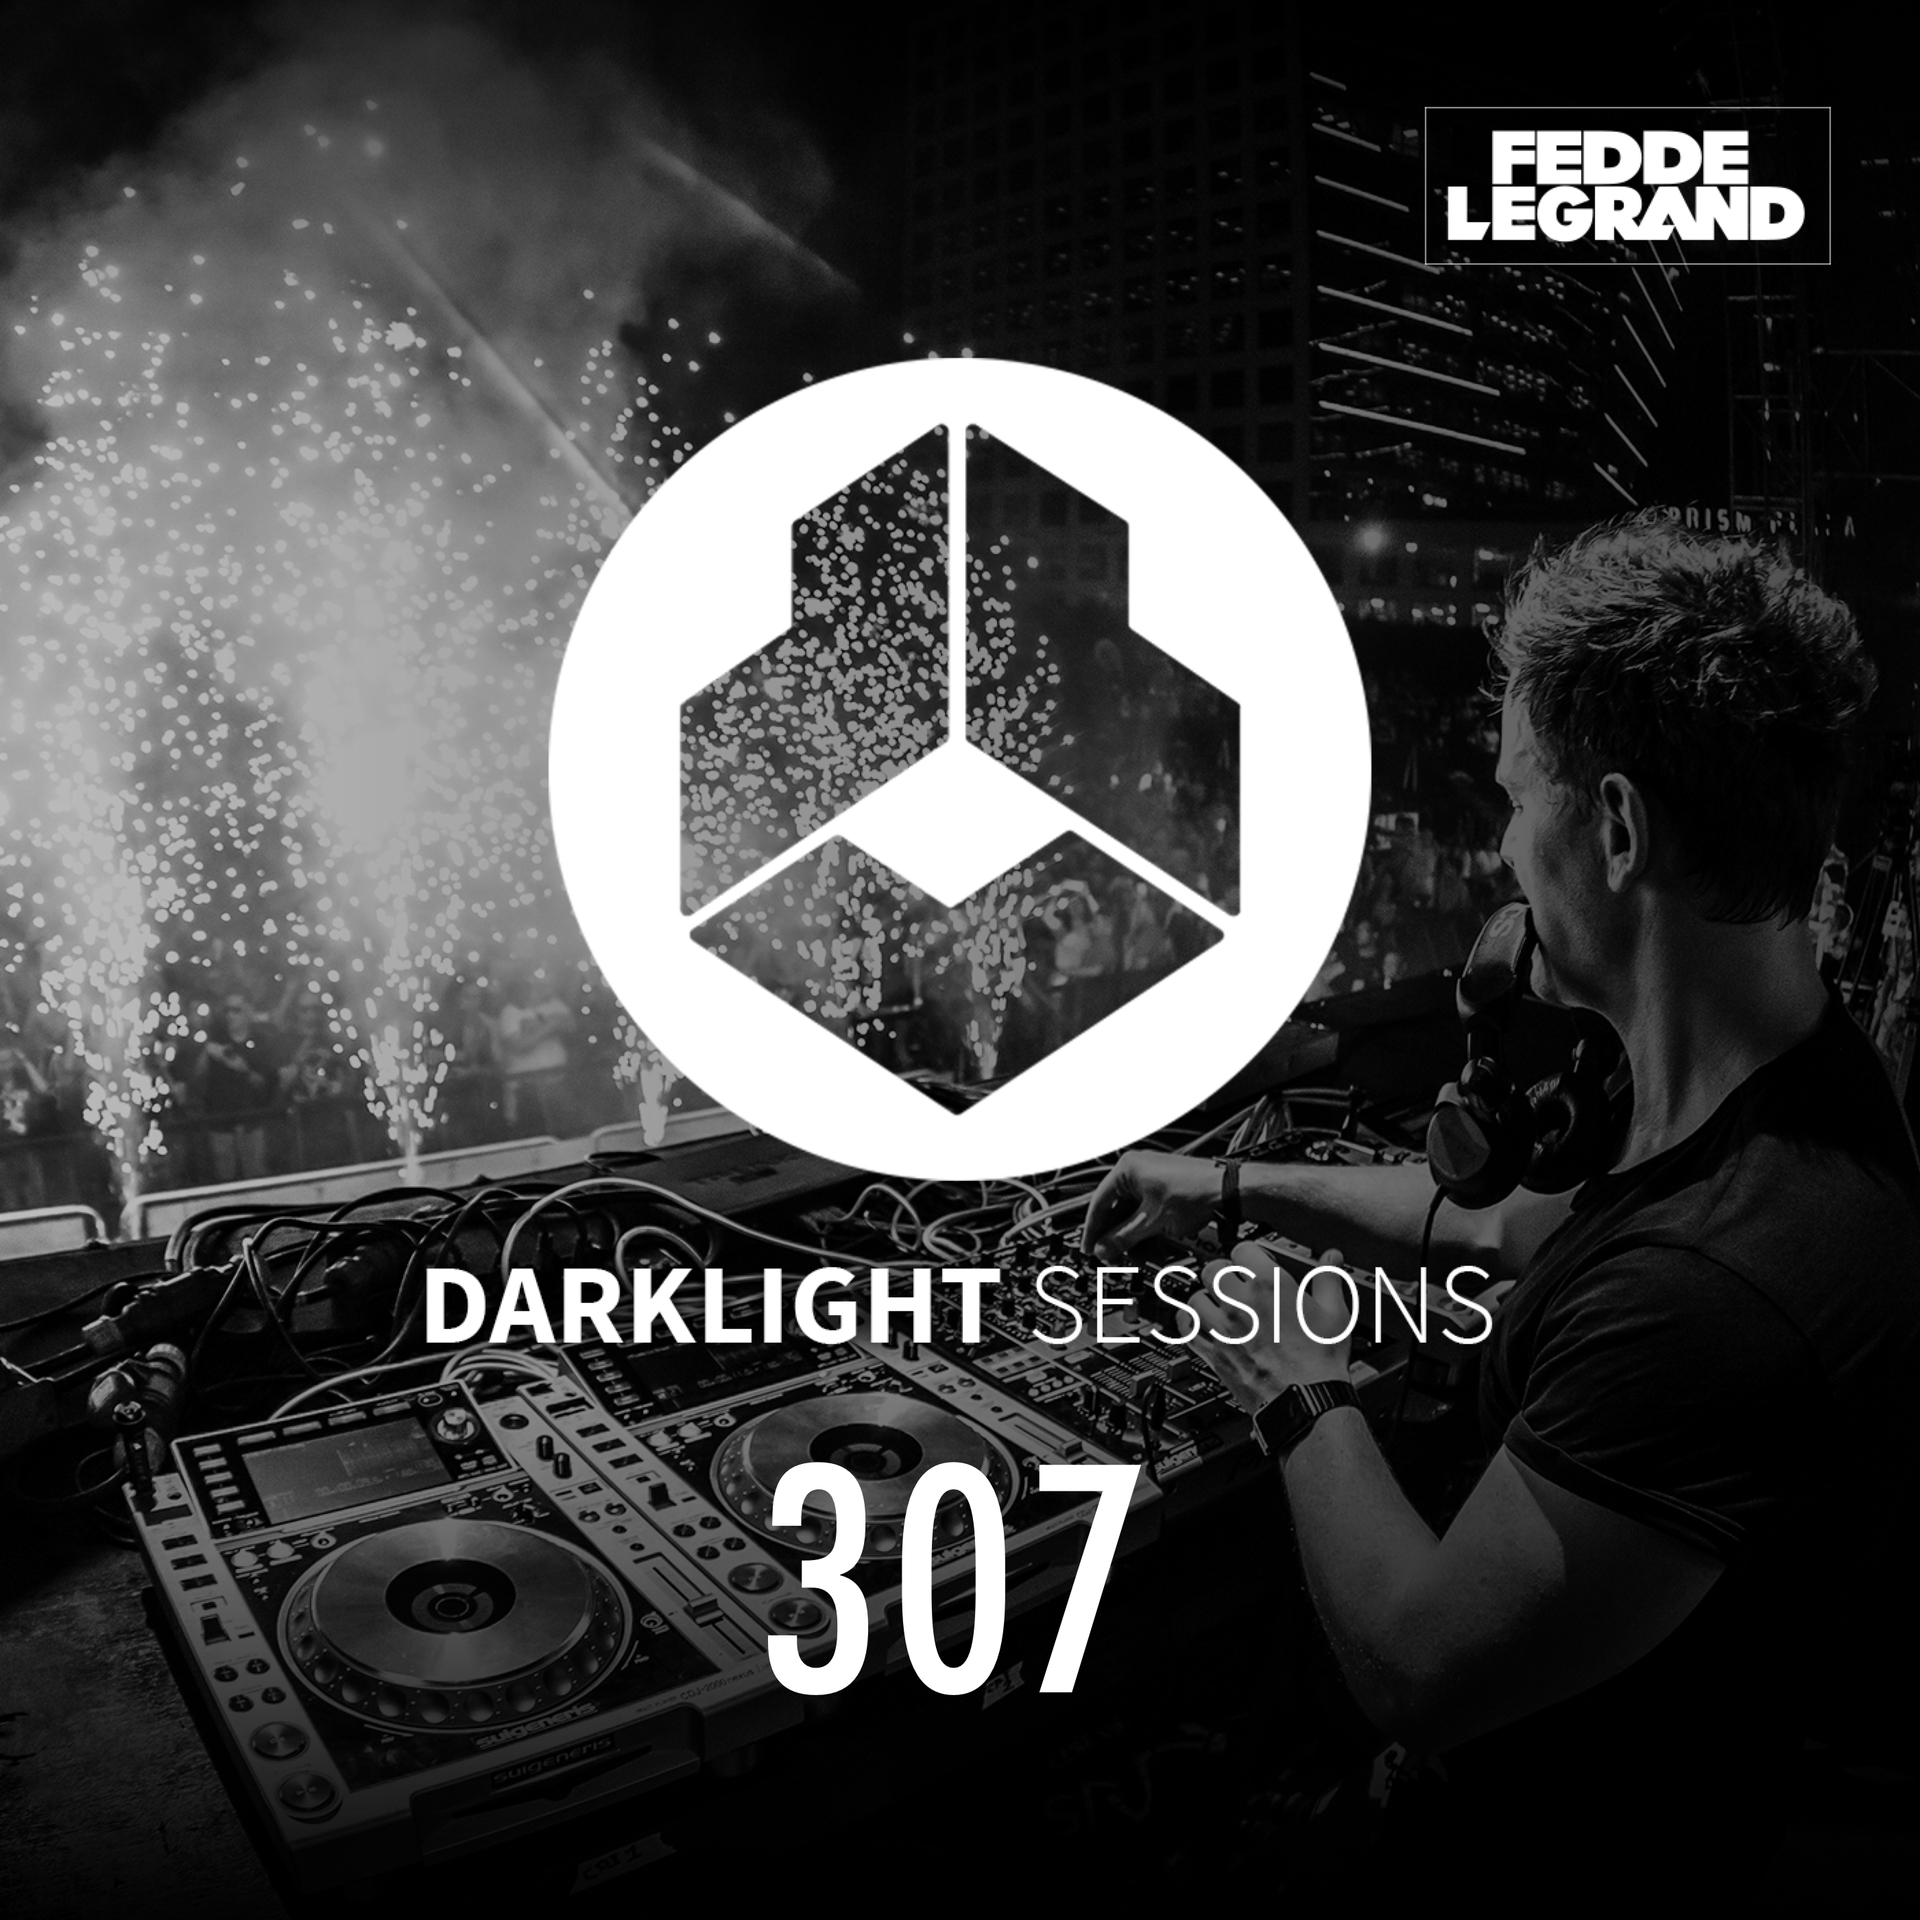 Darklight Sessions 307